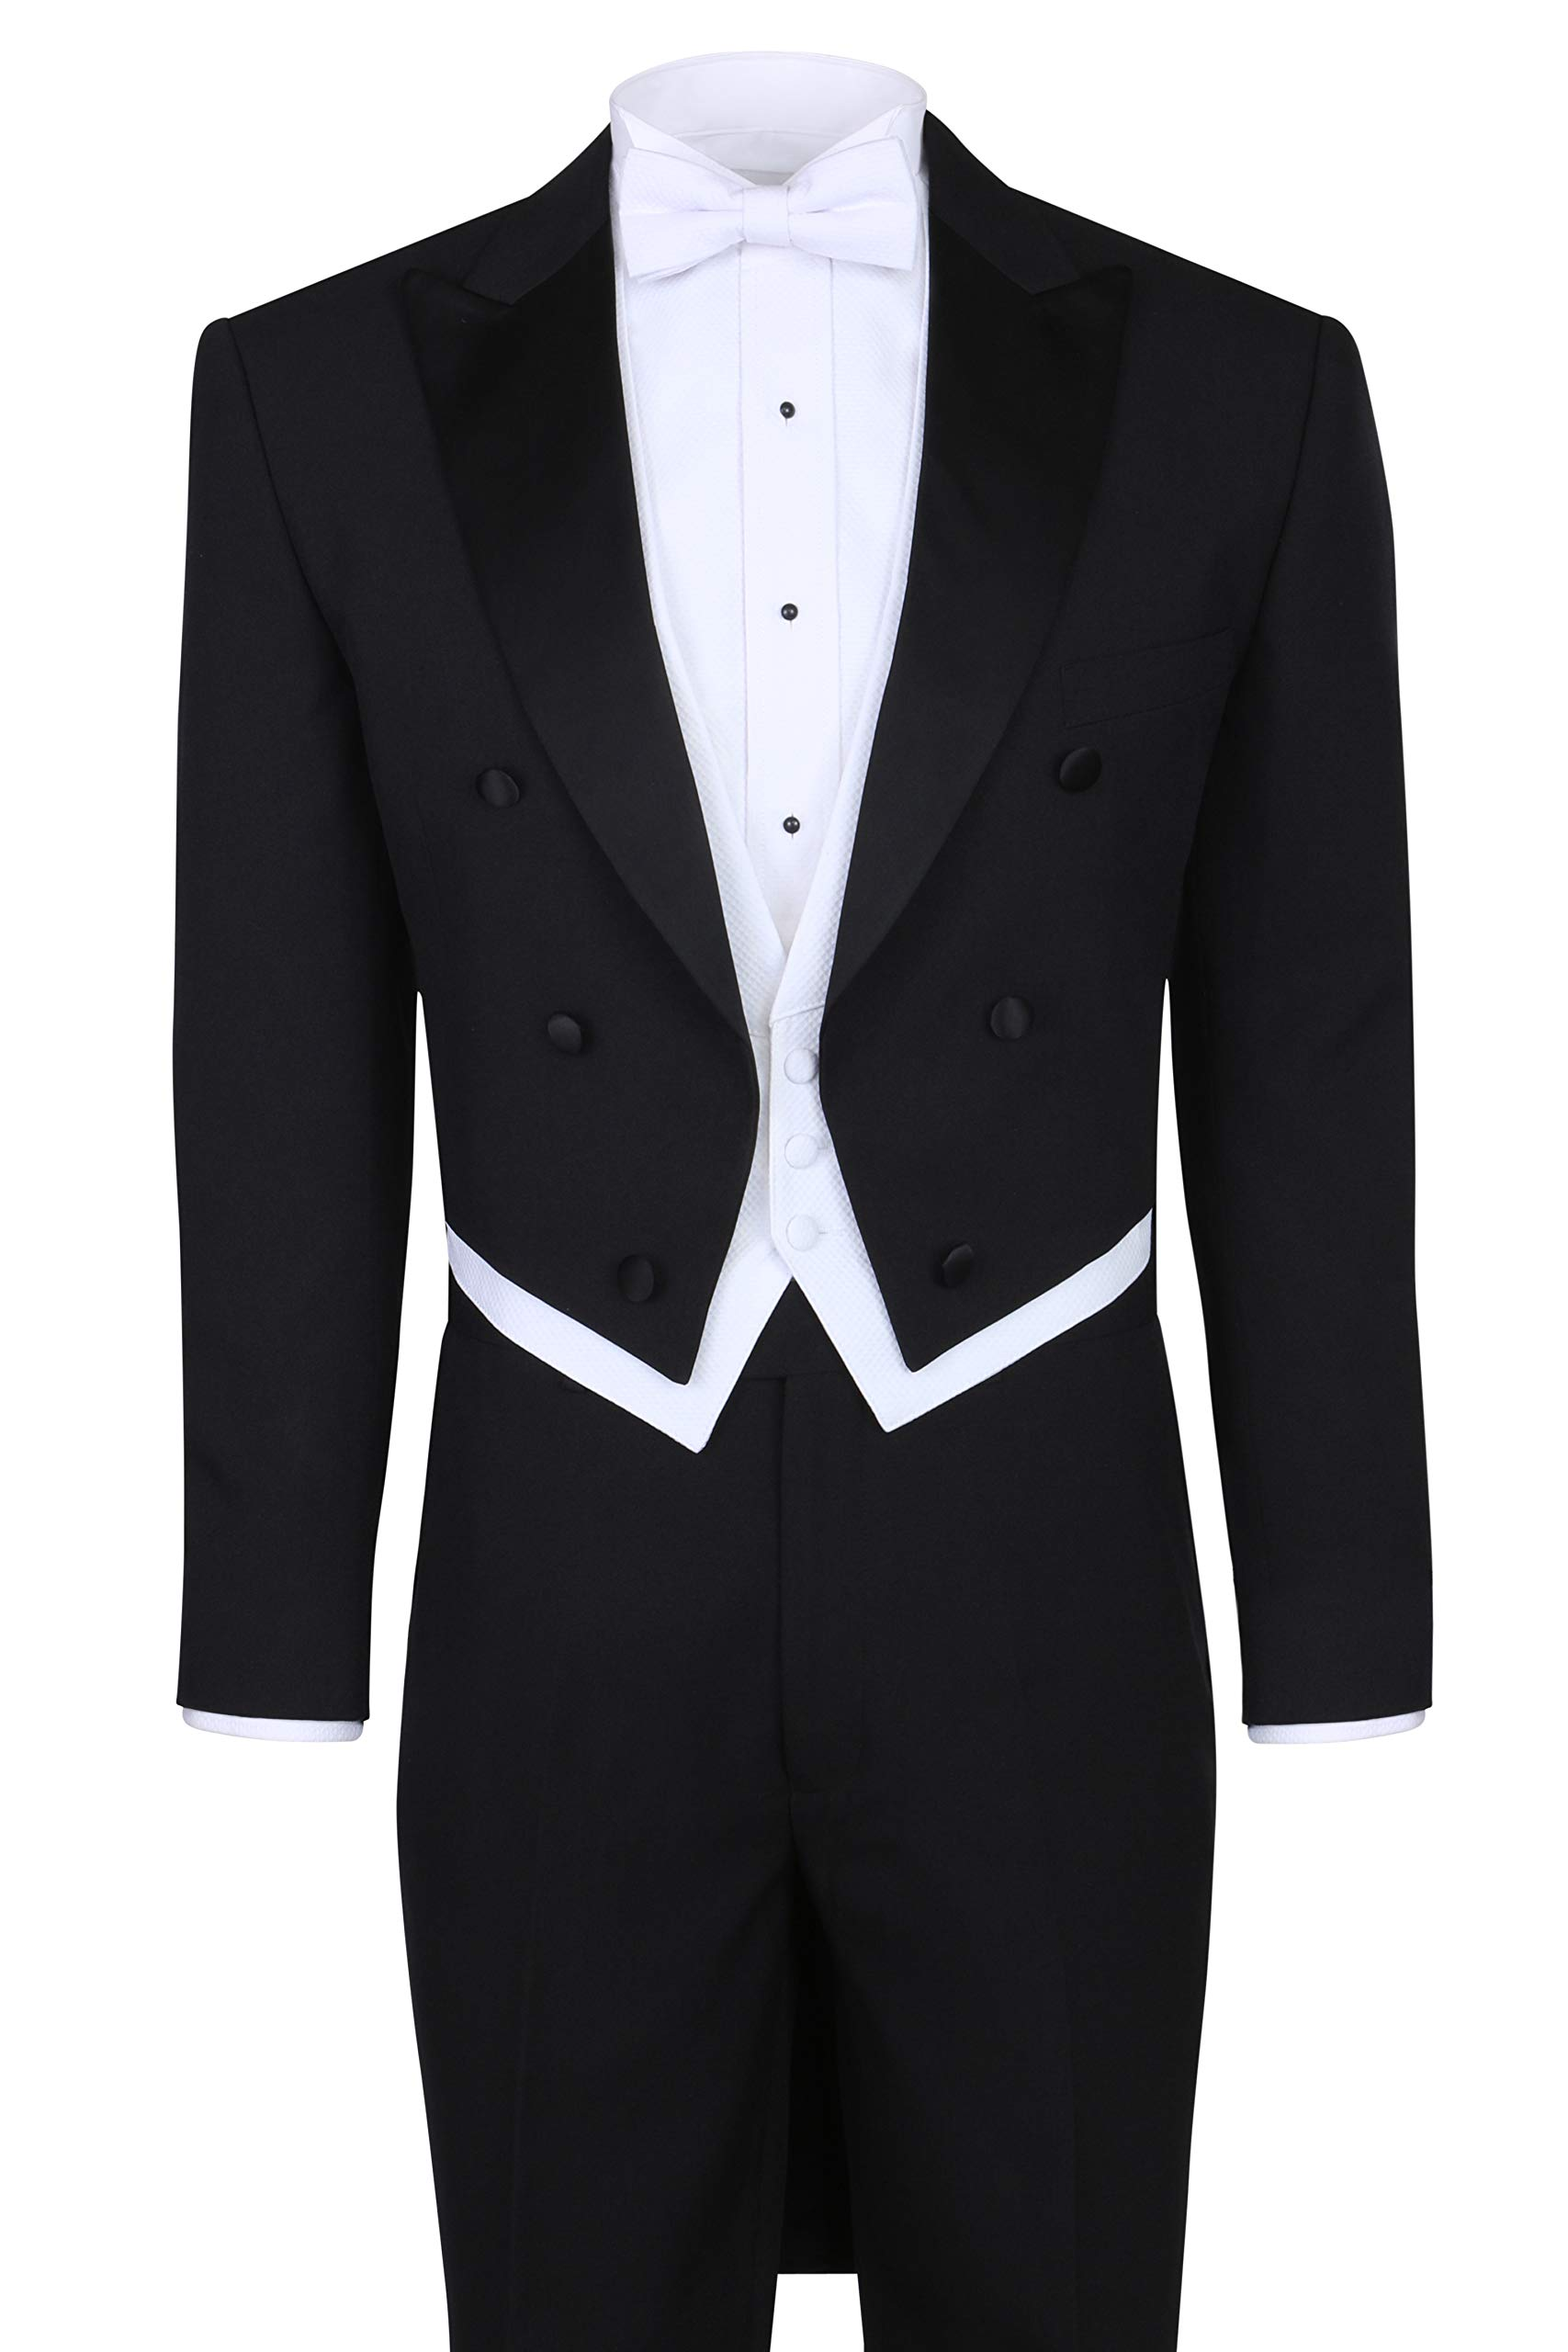 2a09f68f1d Men s Tuxedo Tails - Tailcoat and Trousers Available in Black or White  product image